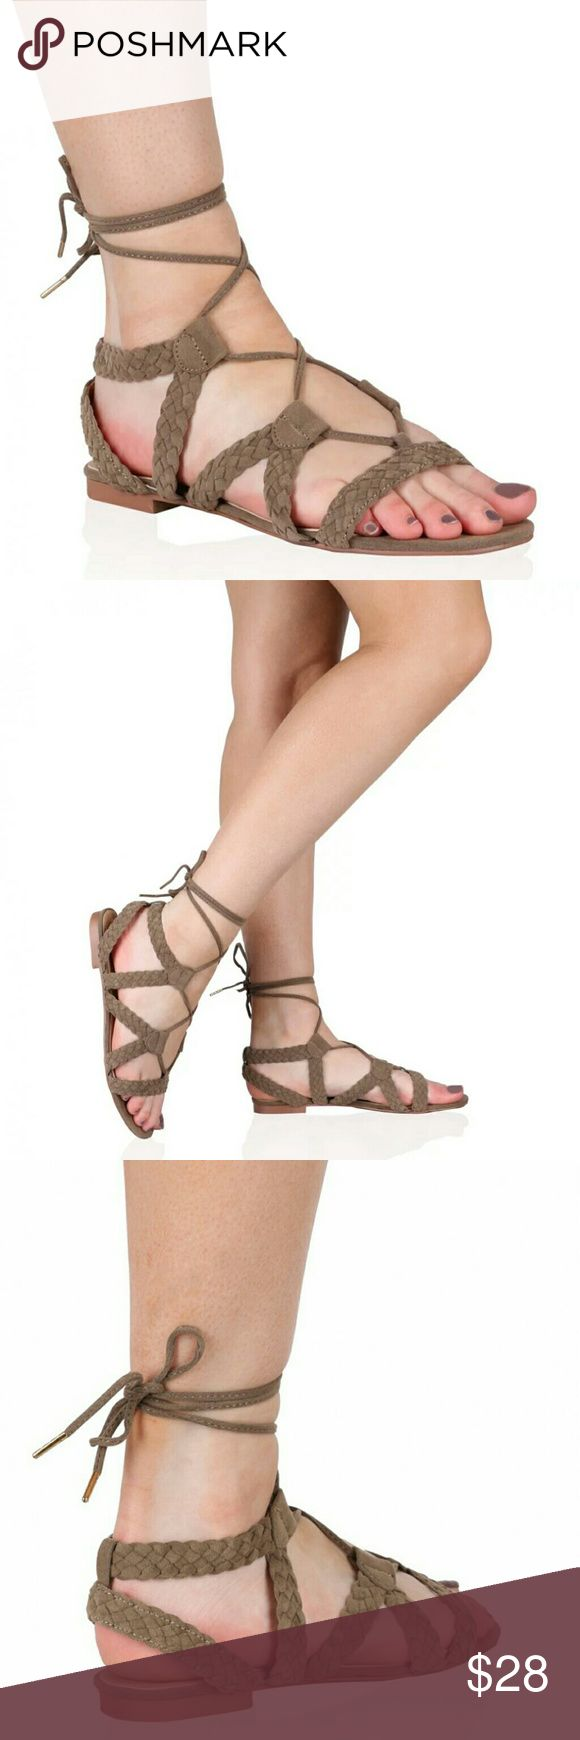 BOHO Taupe flat gladiator sandal taupe Flat gladiator lace up sandals braided taupe tan faux suede. New in box. PD Shoes